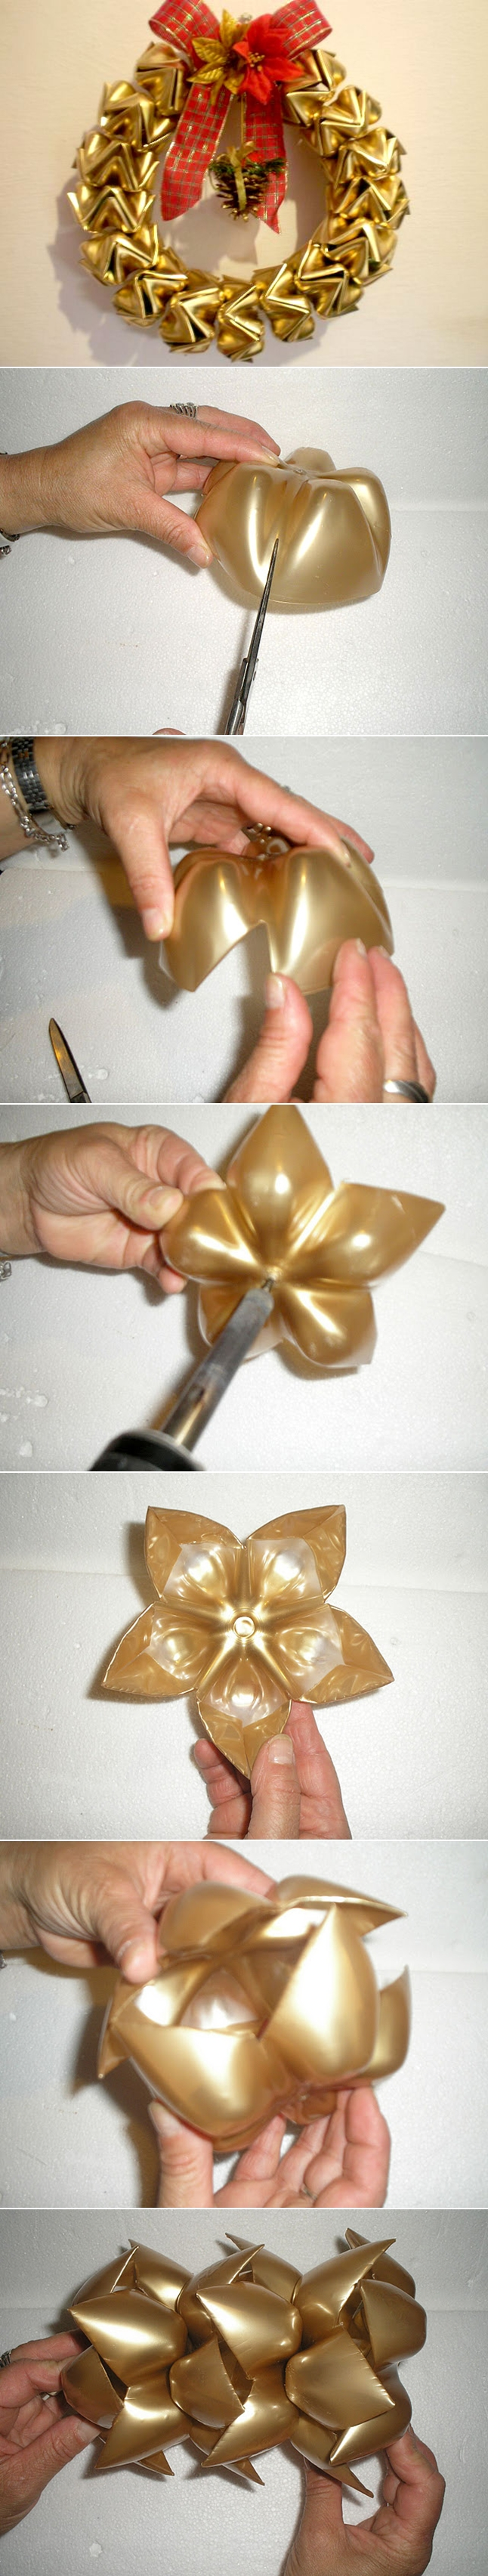 diy-christmas-wreath-tutorial-pet-bottles-gold